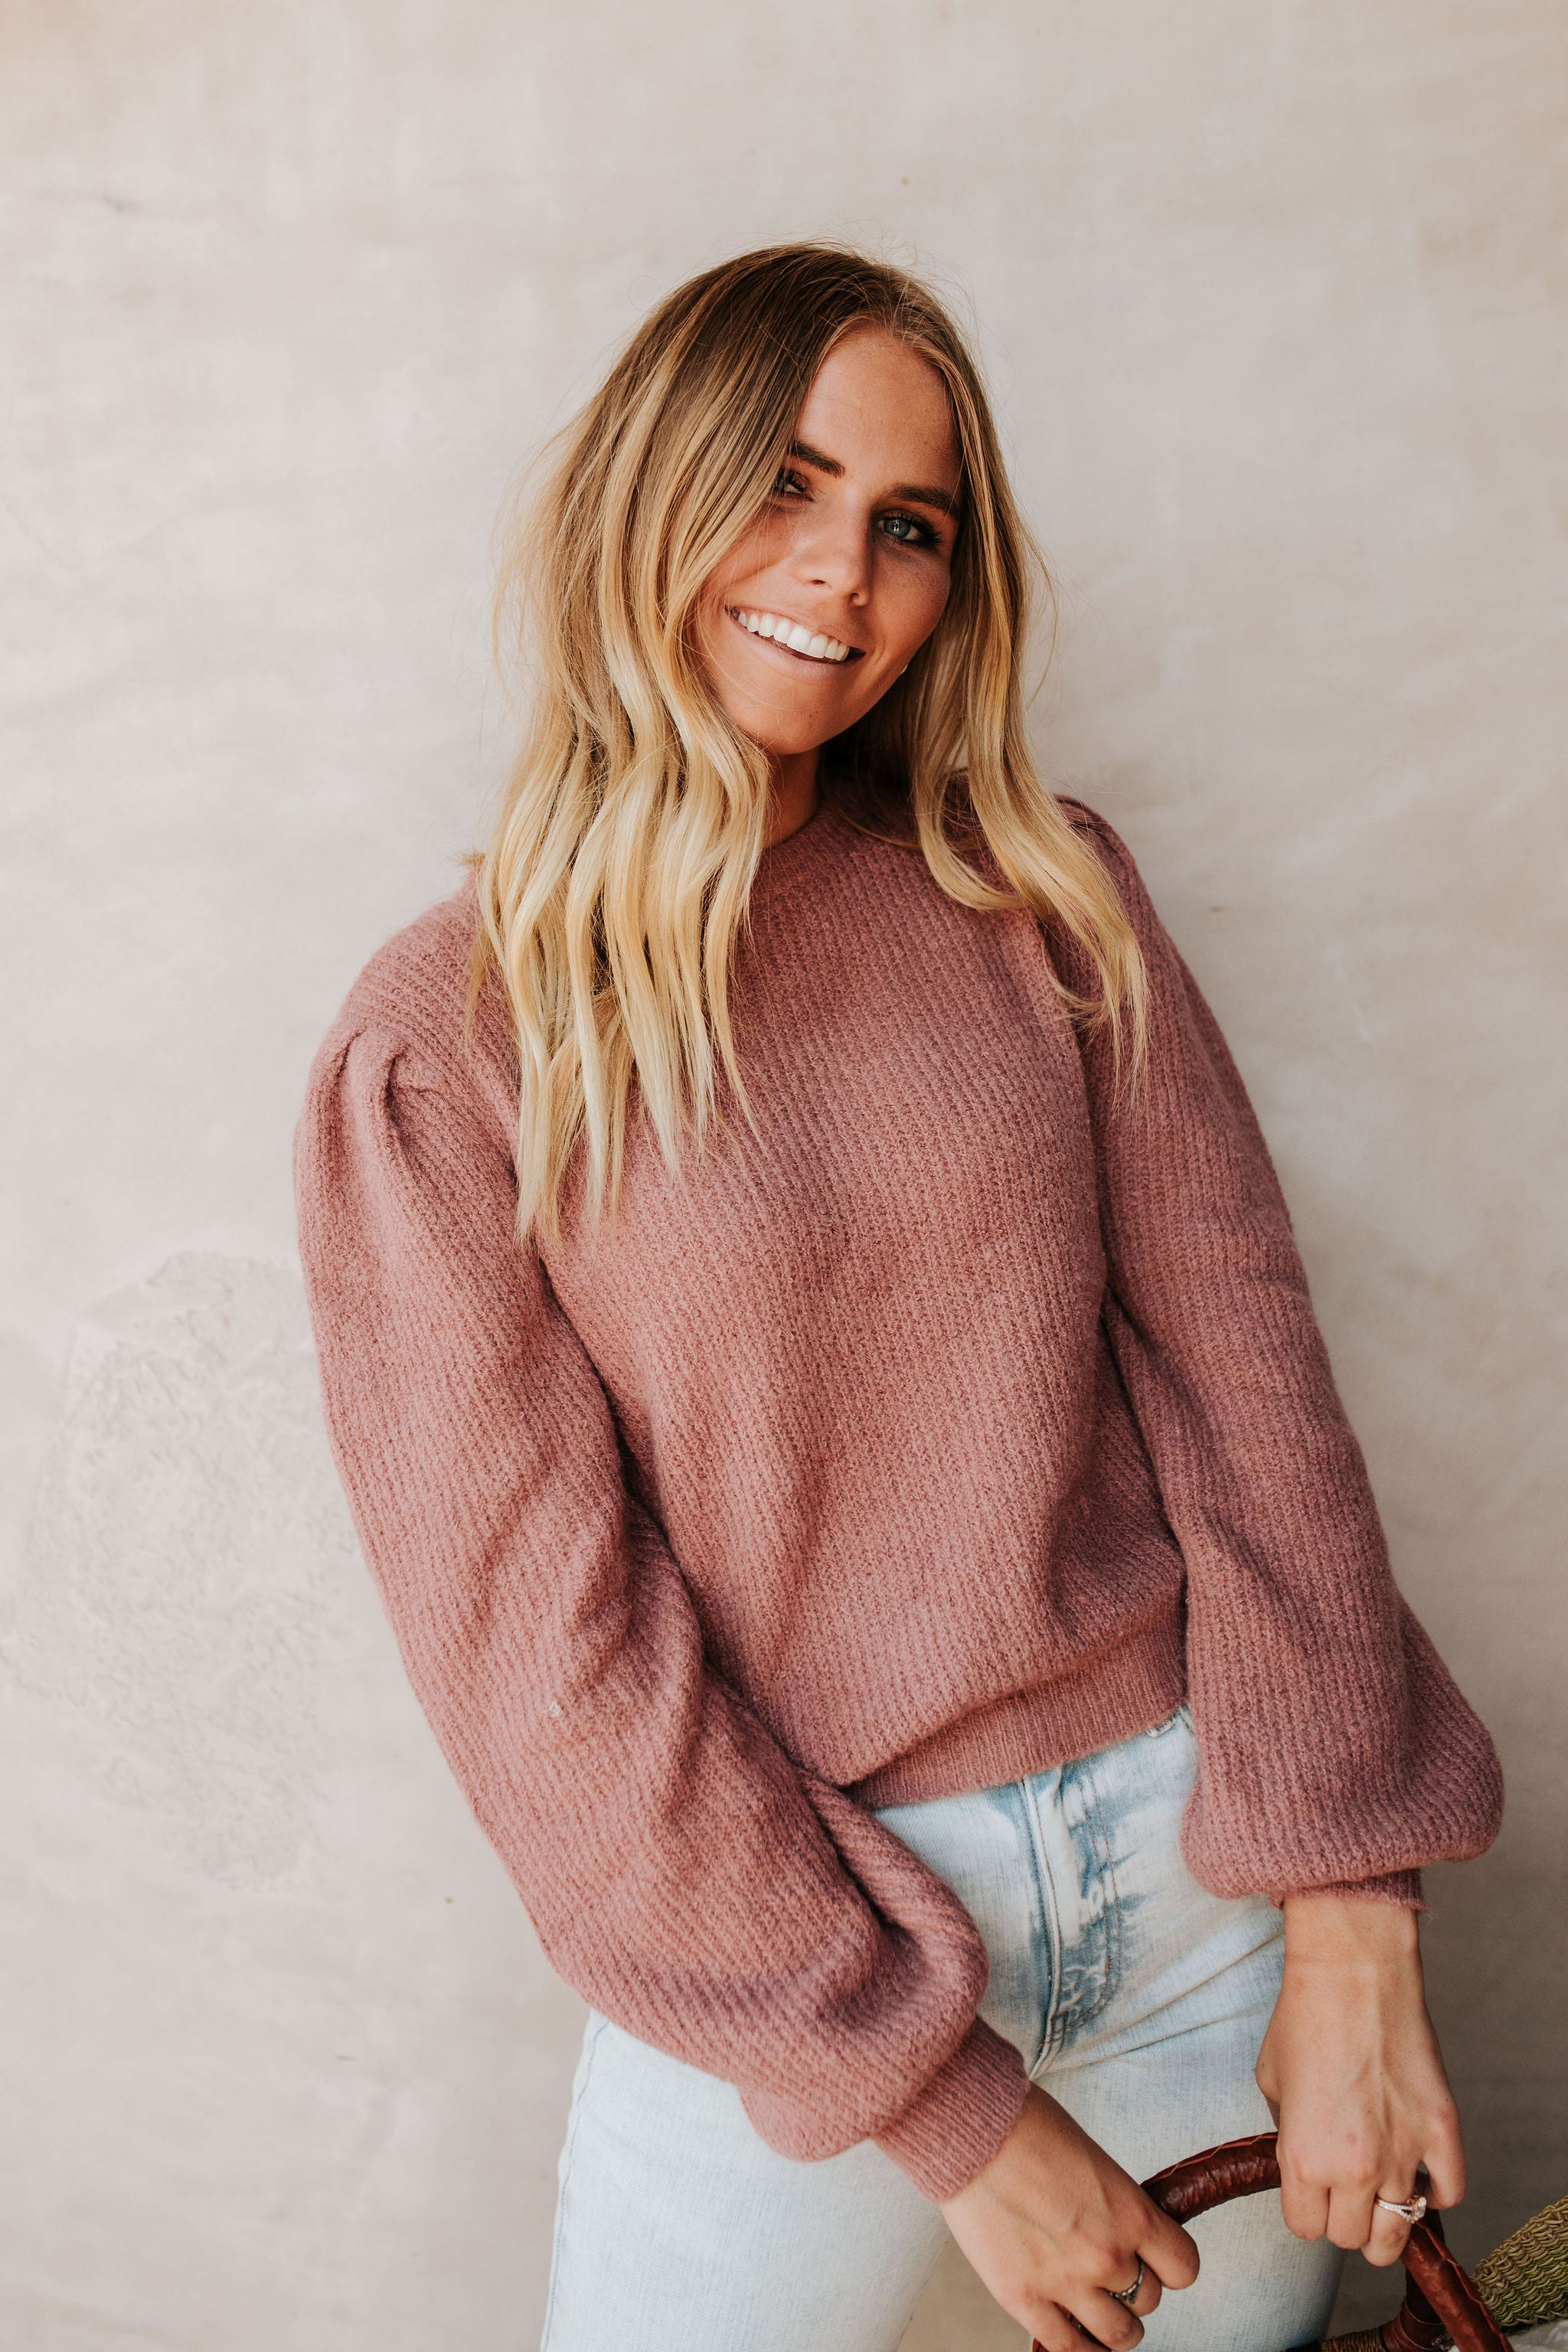 THE FALLIN' FOR YOU SWEATER IN MAUVE